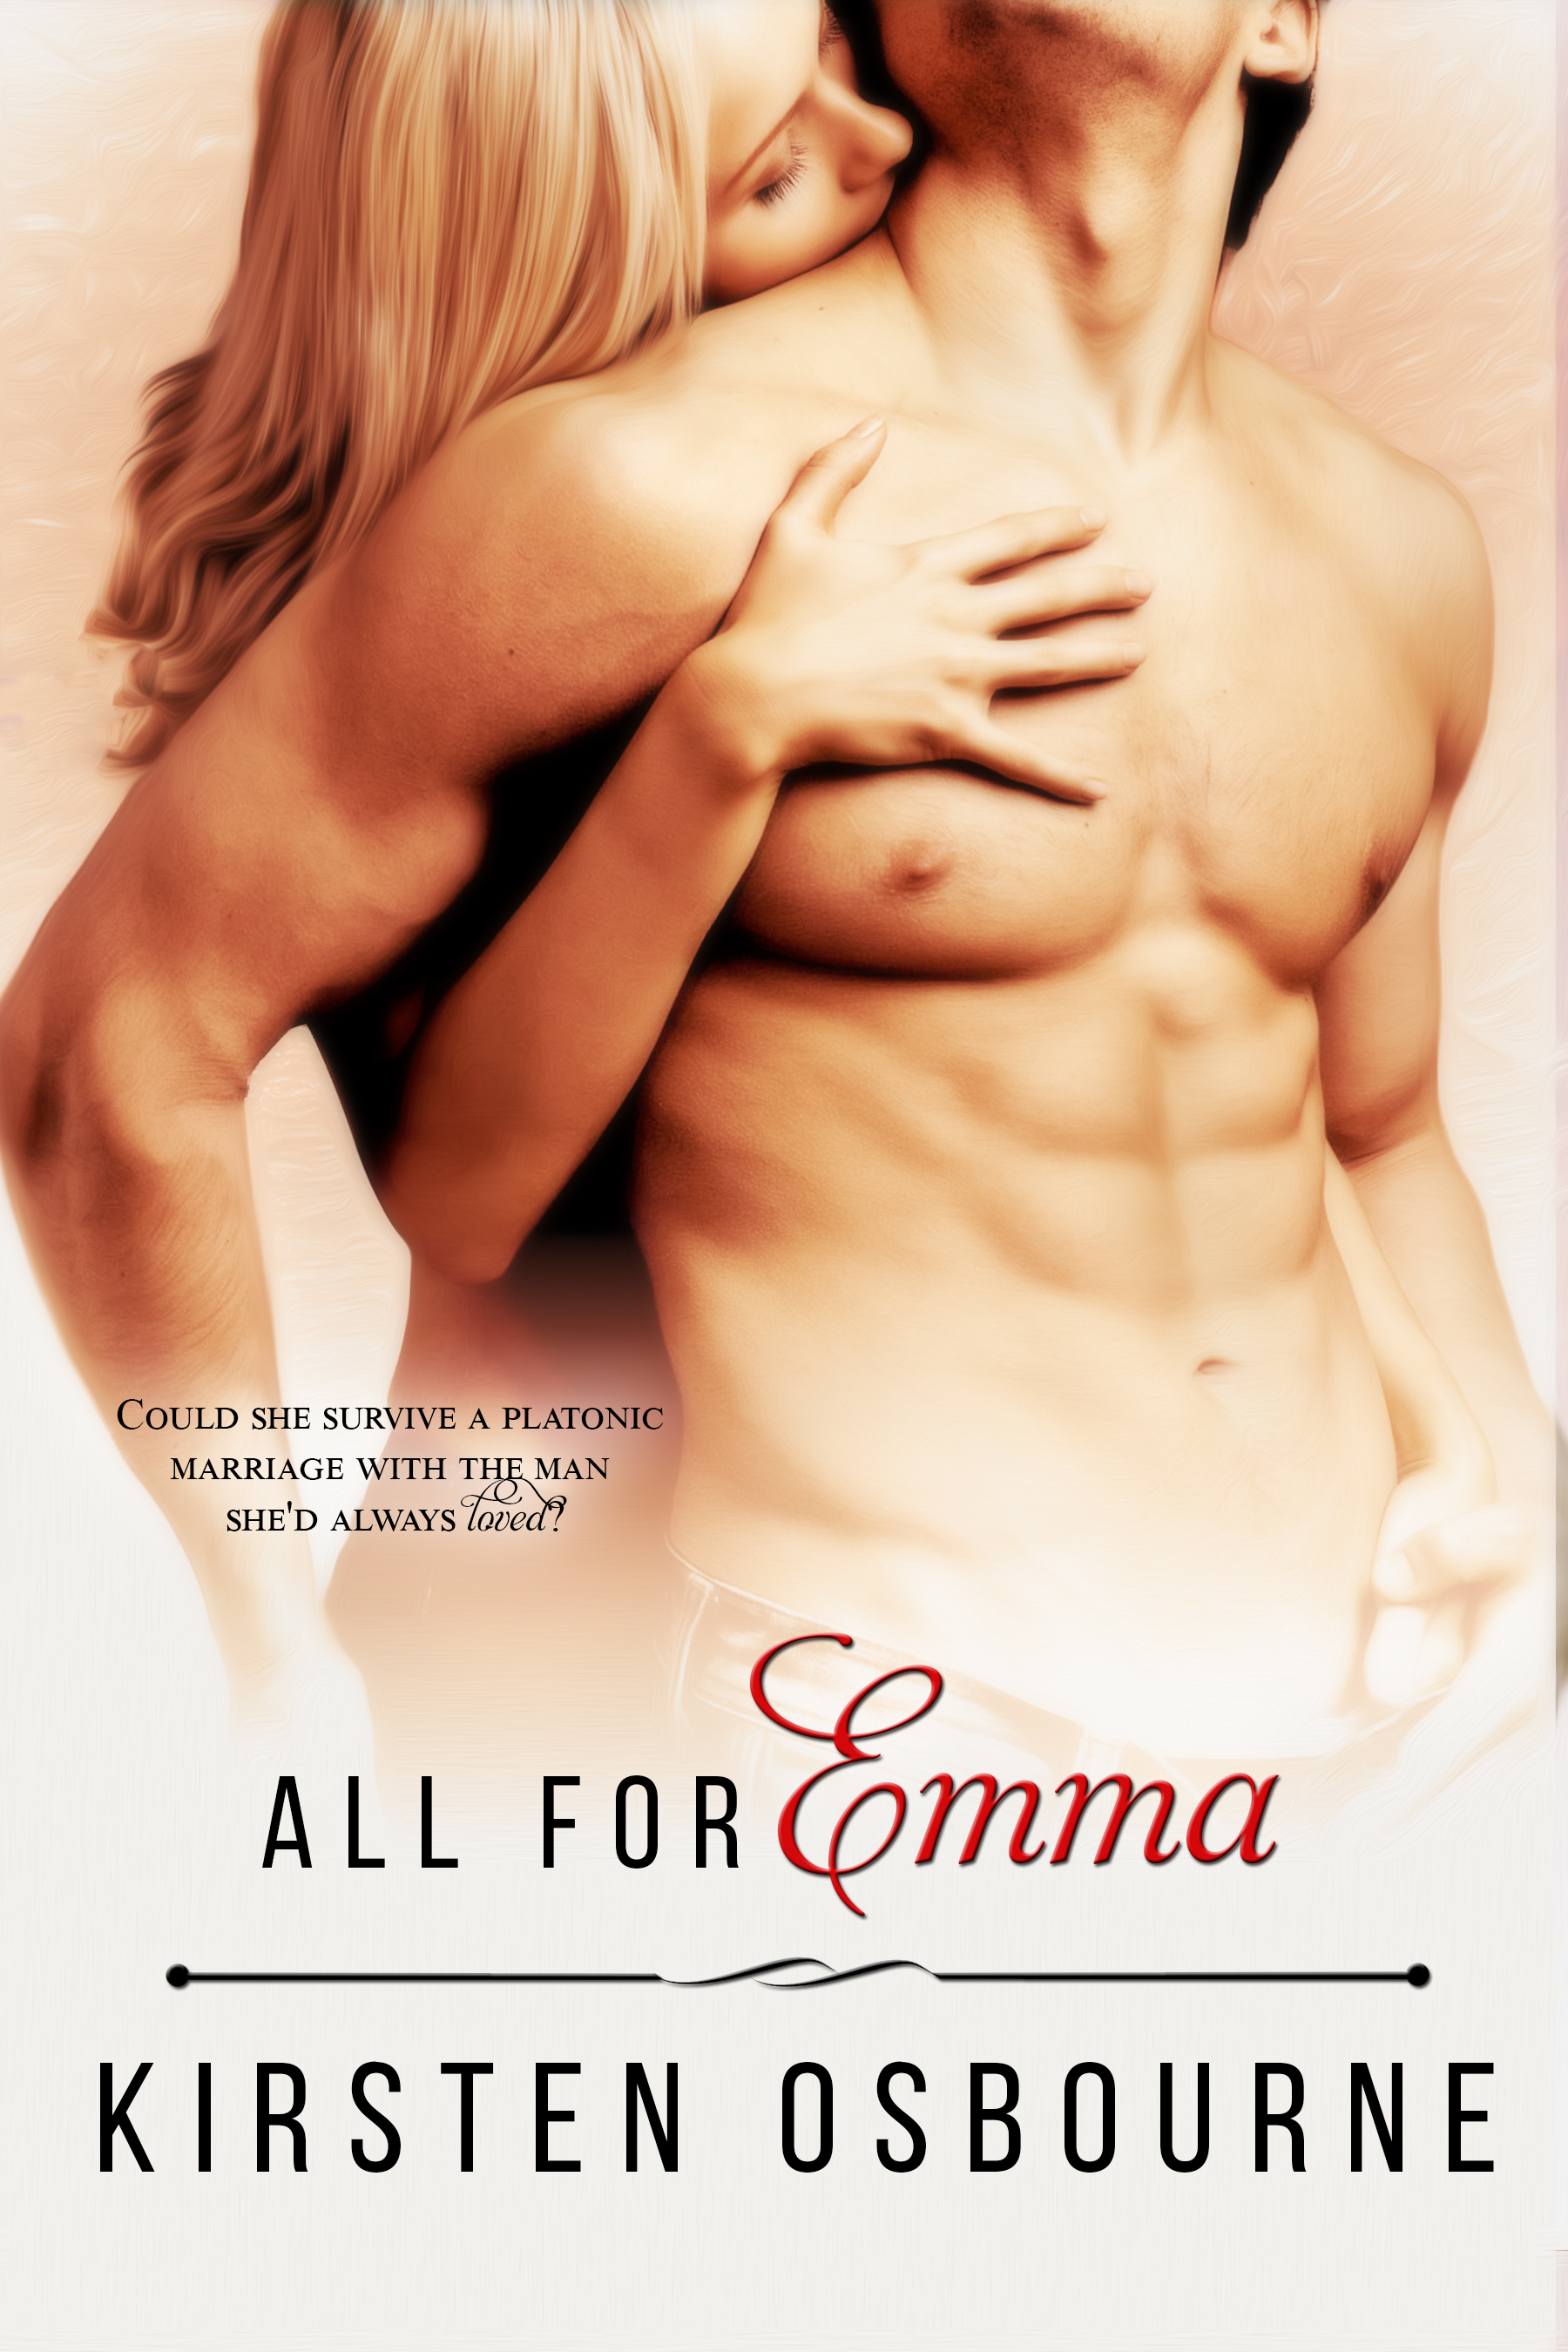 Kirsten Osbourne - All For Emma